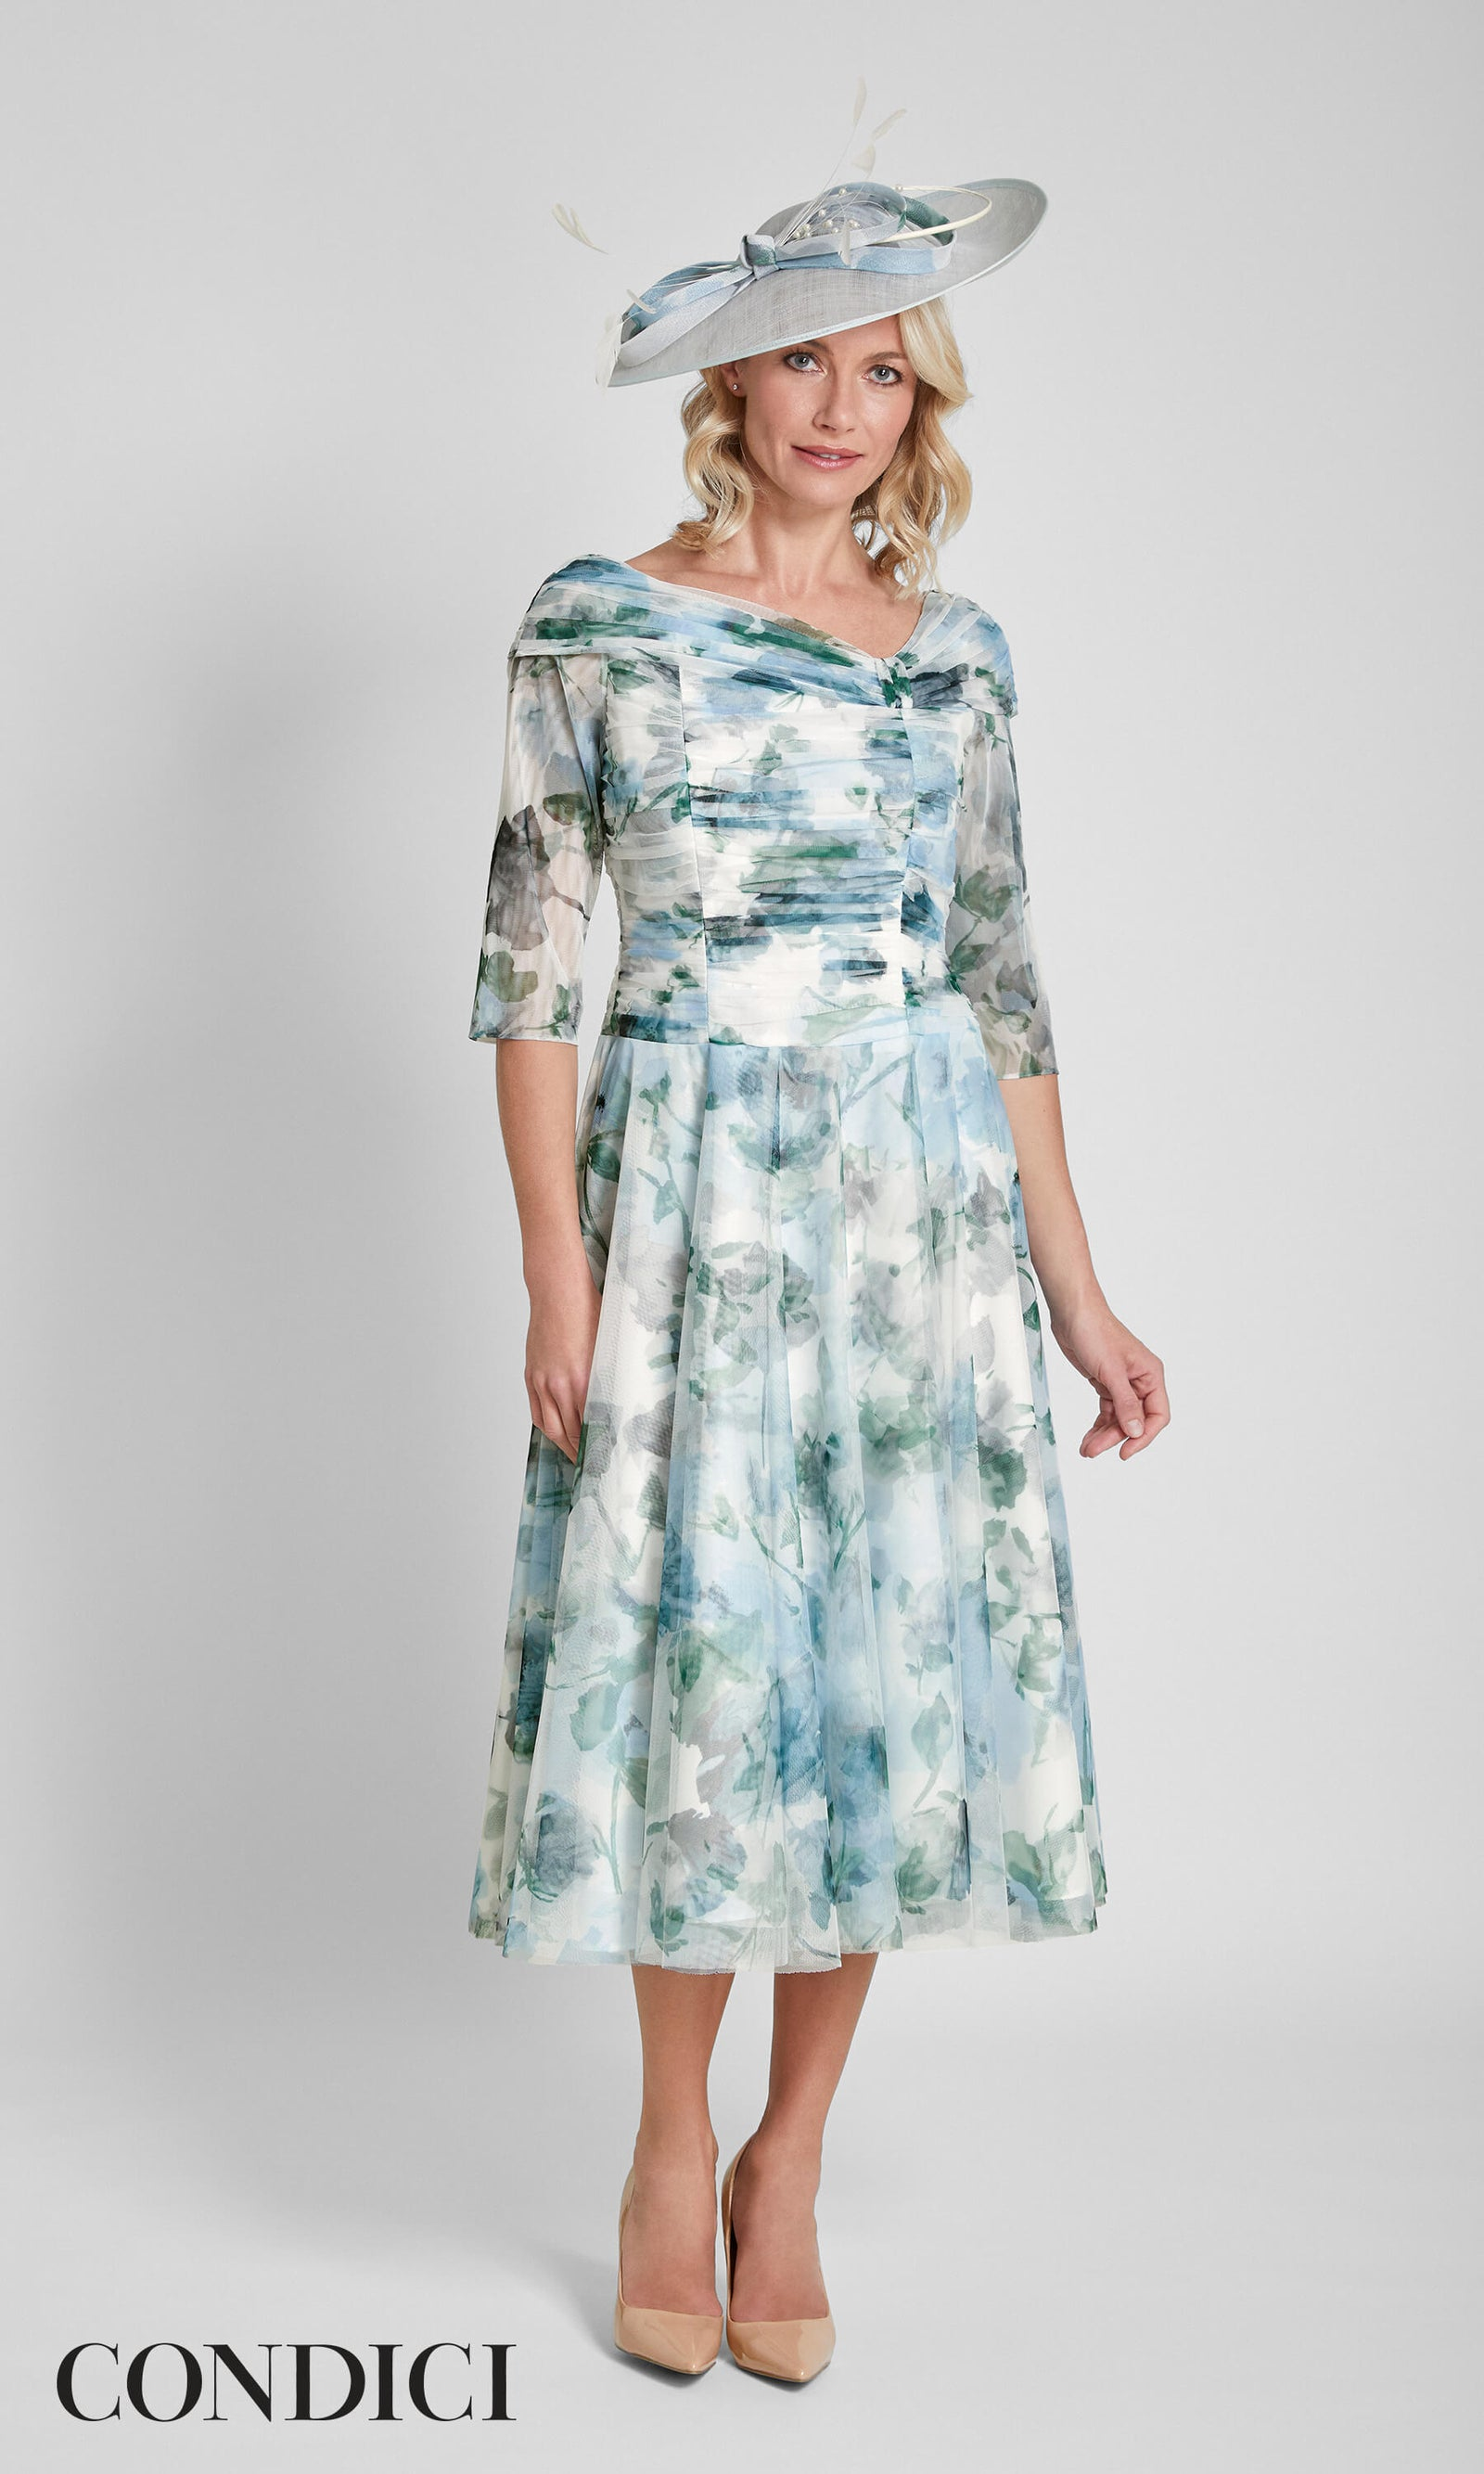 71014 Condici Blue Dolce Vita Cosmic Sky Dress - Fab Frocks